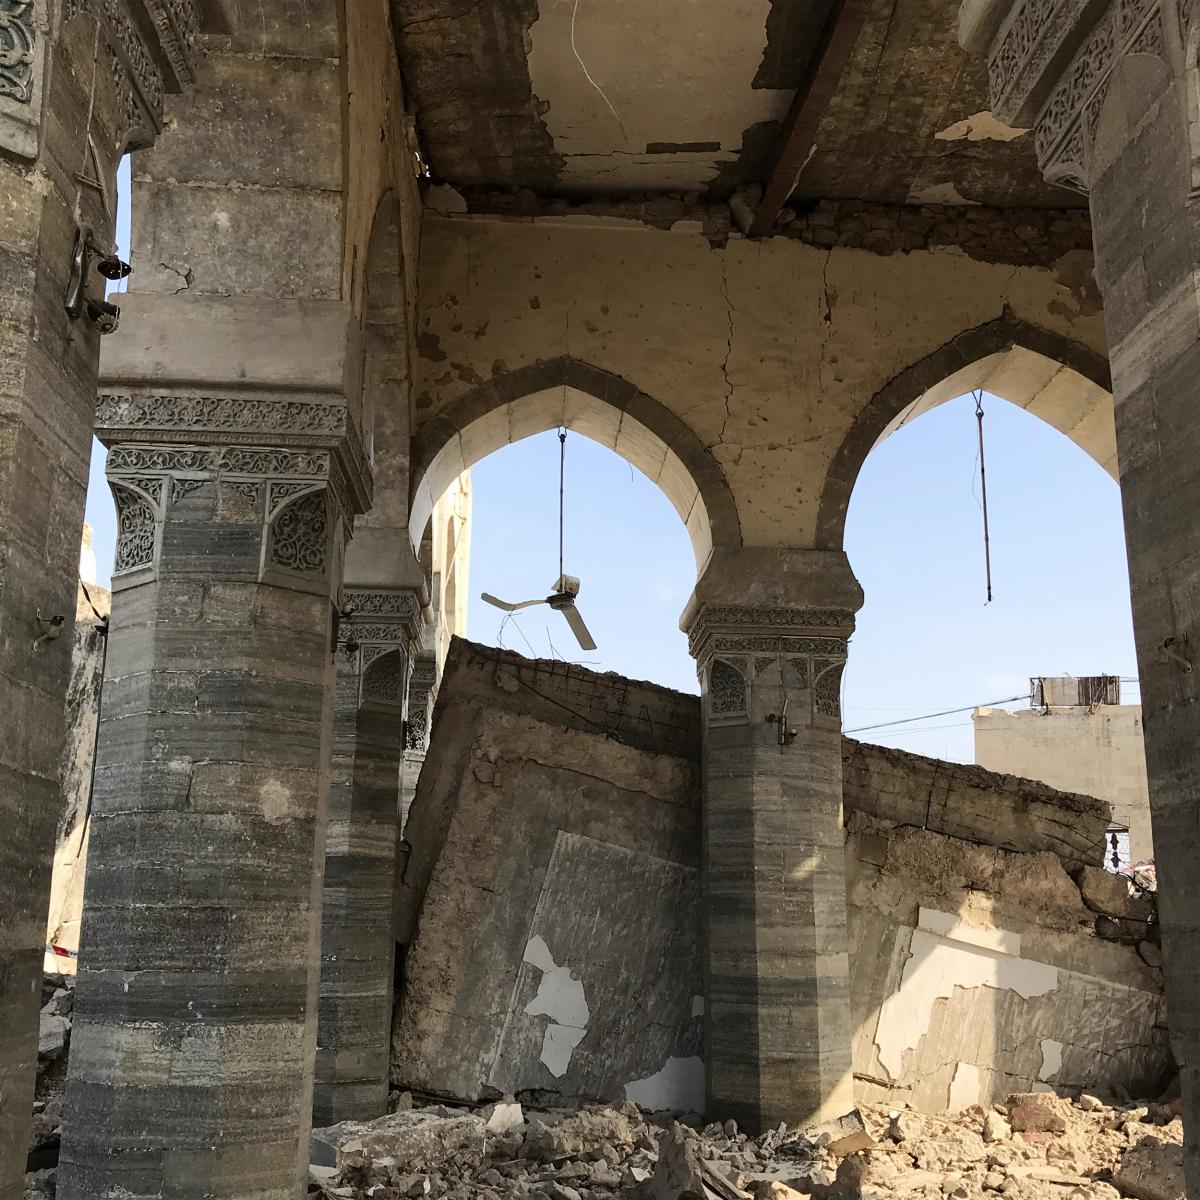 ISIS blew up the al-Nuri Mosque in the battle for Mosul before it was driven out of the area in 2017.